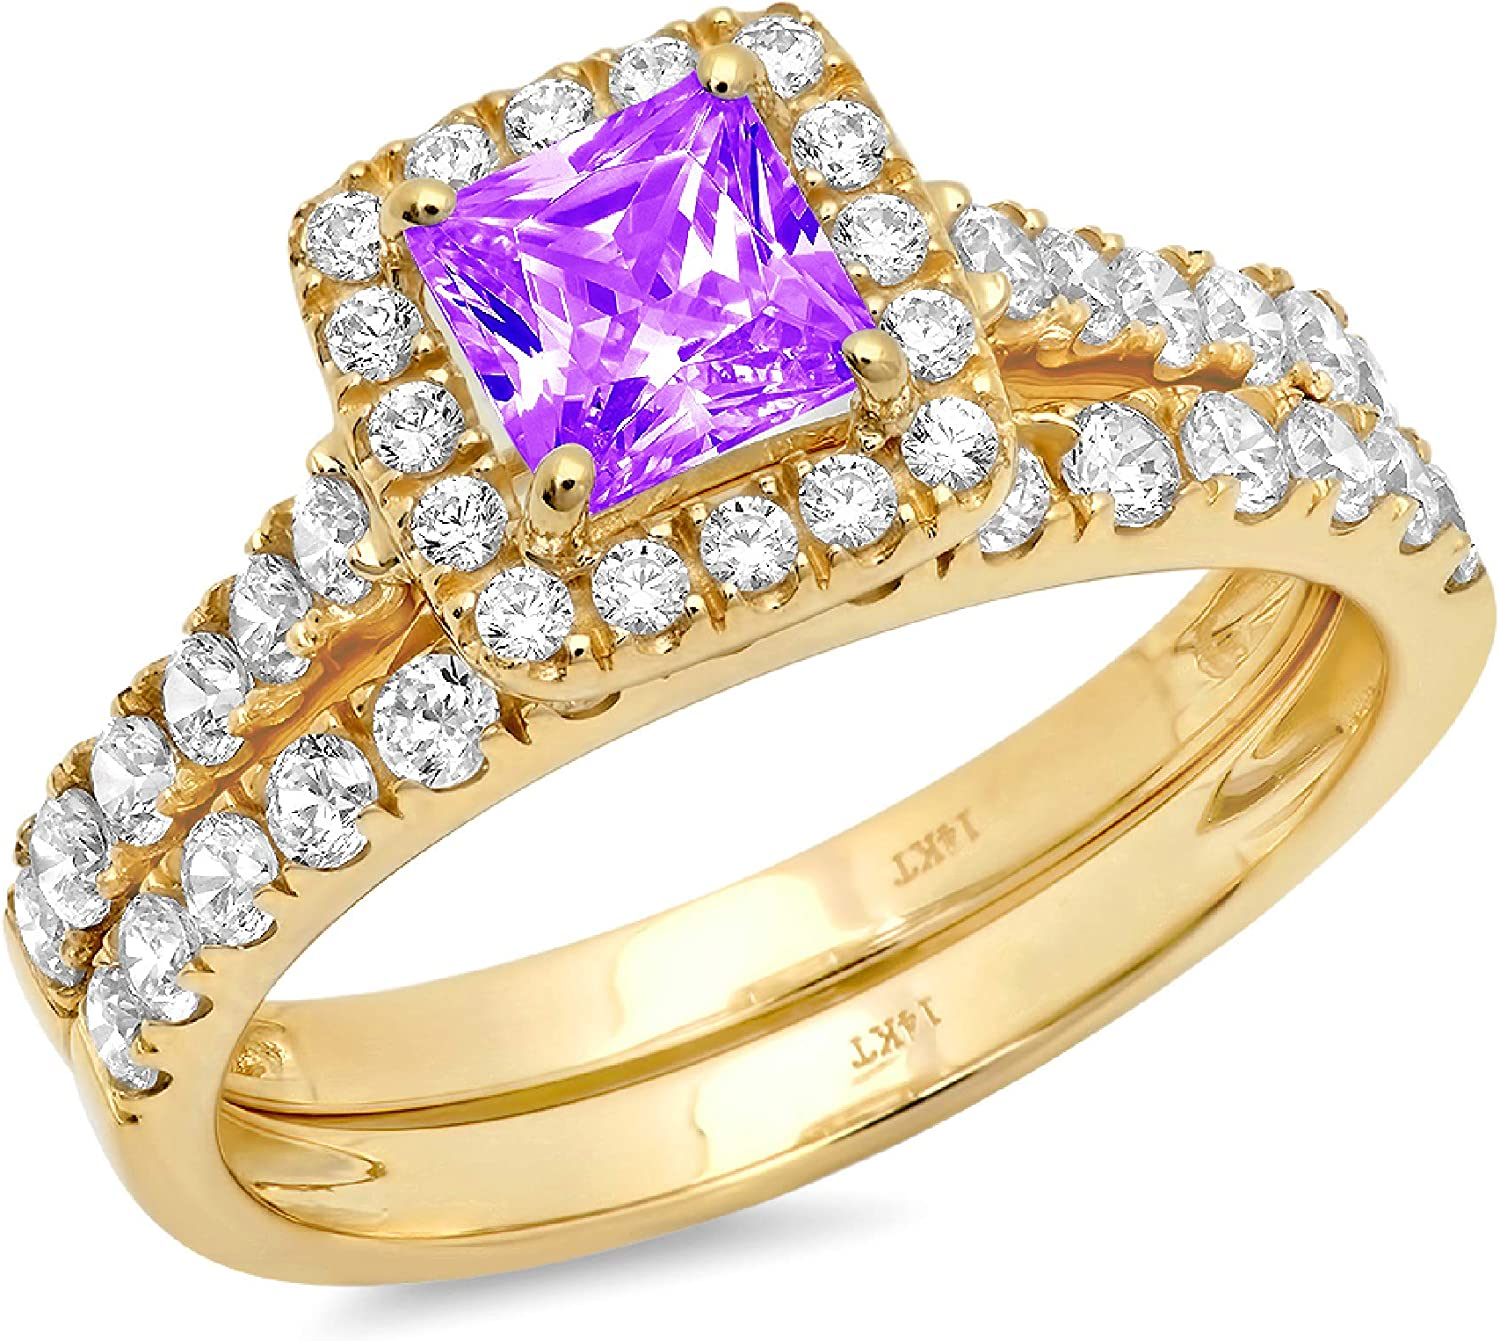 1.60ct Princess Cut Halo Pave Solitaire Accent Natural Purple Amethyst Engagement Promise Statement Anniversary Bridal Wedding Ring Band set Real Solid 14k Yellow Gold